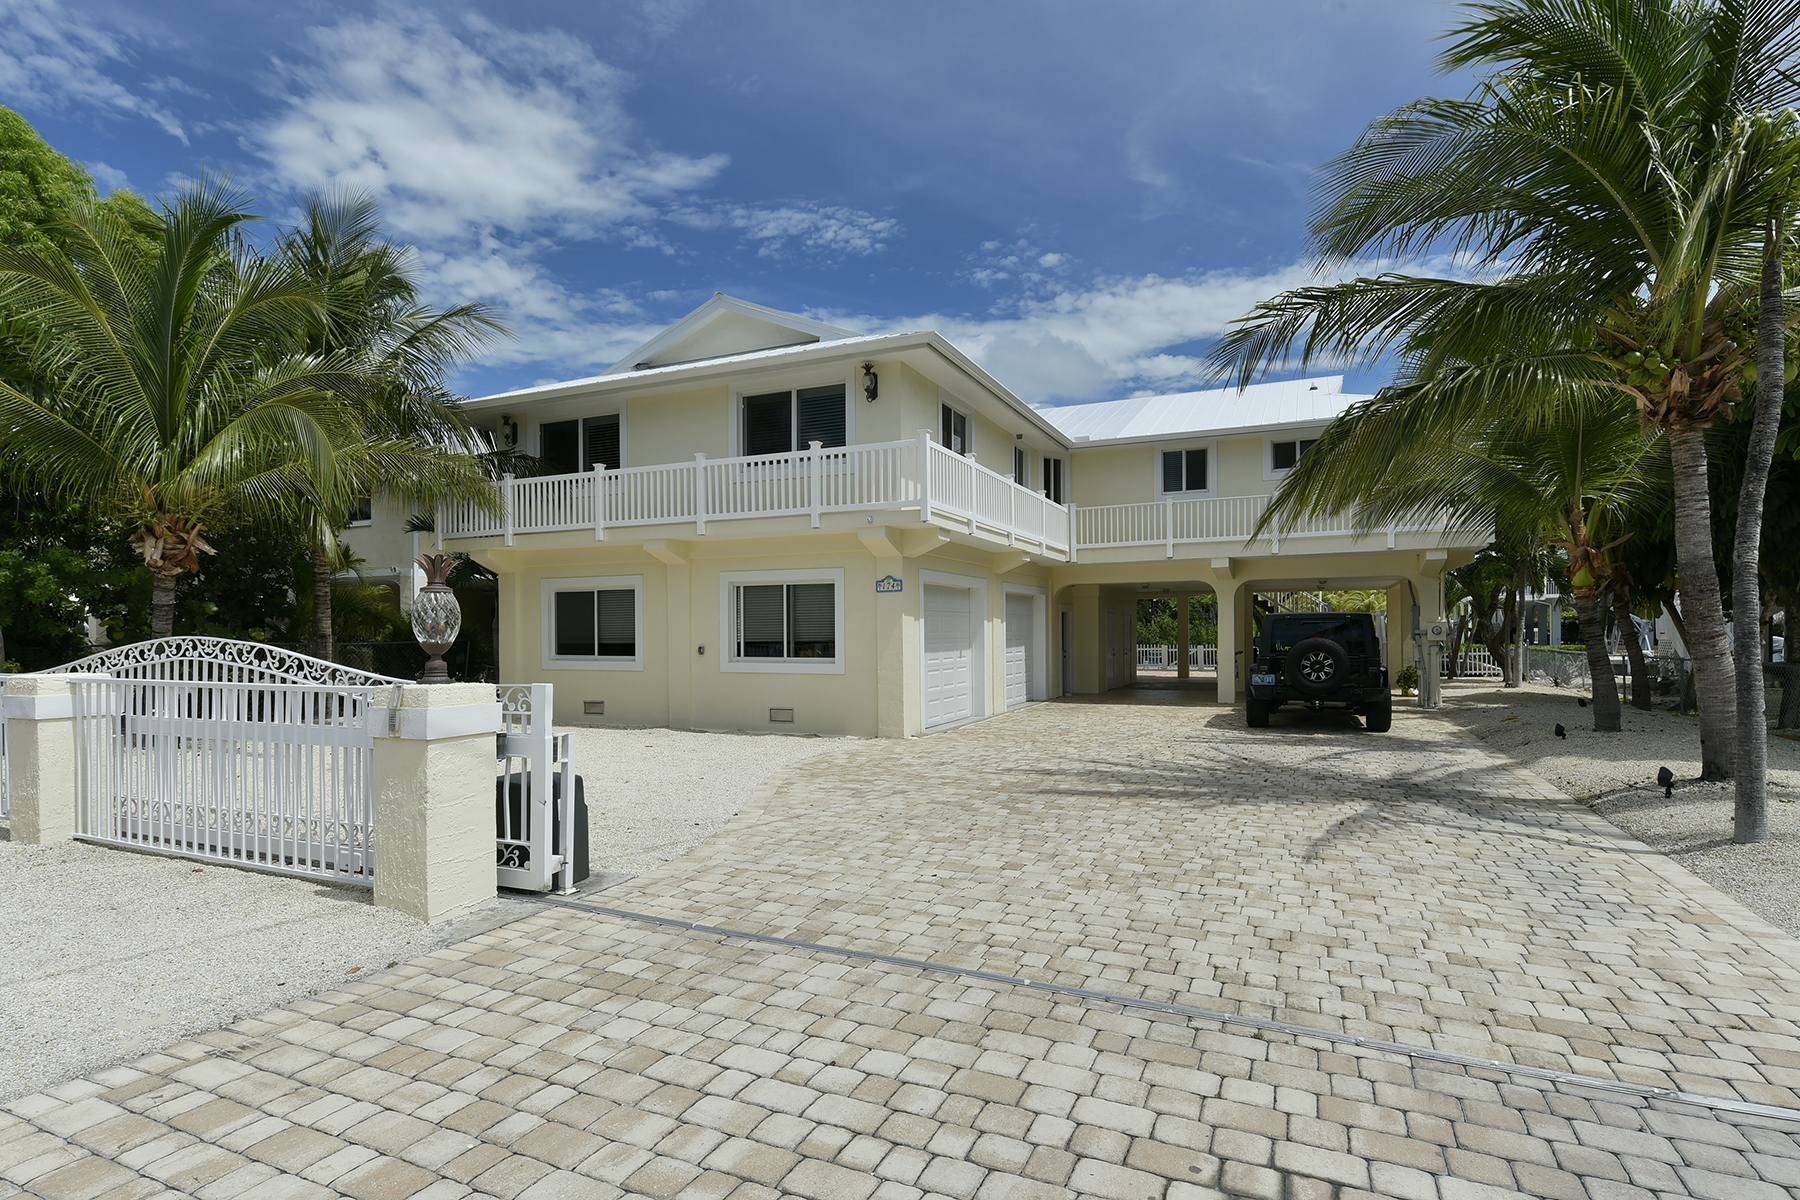 Single Family Home for Sale at Stunning Waterfront Location 174 Plantation Avenue Plantation Key, Florida, 33070 United States